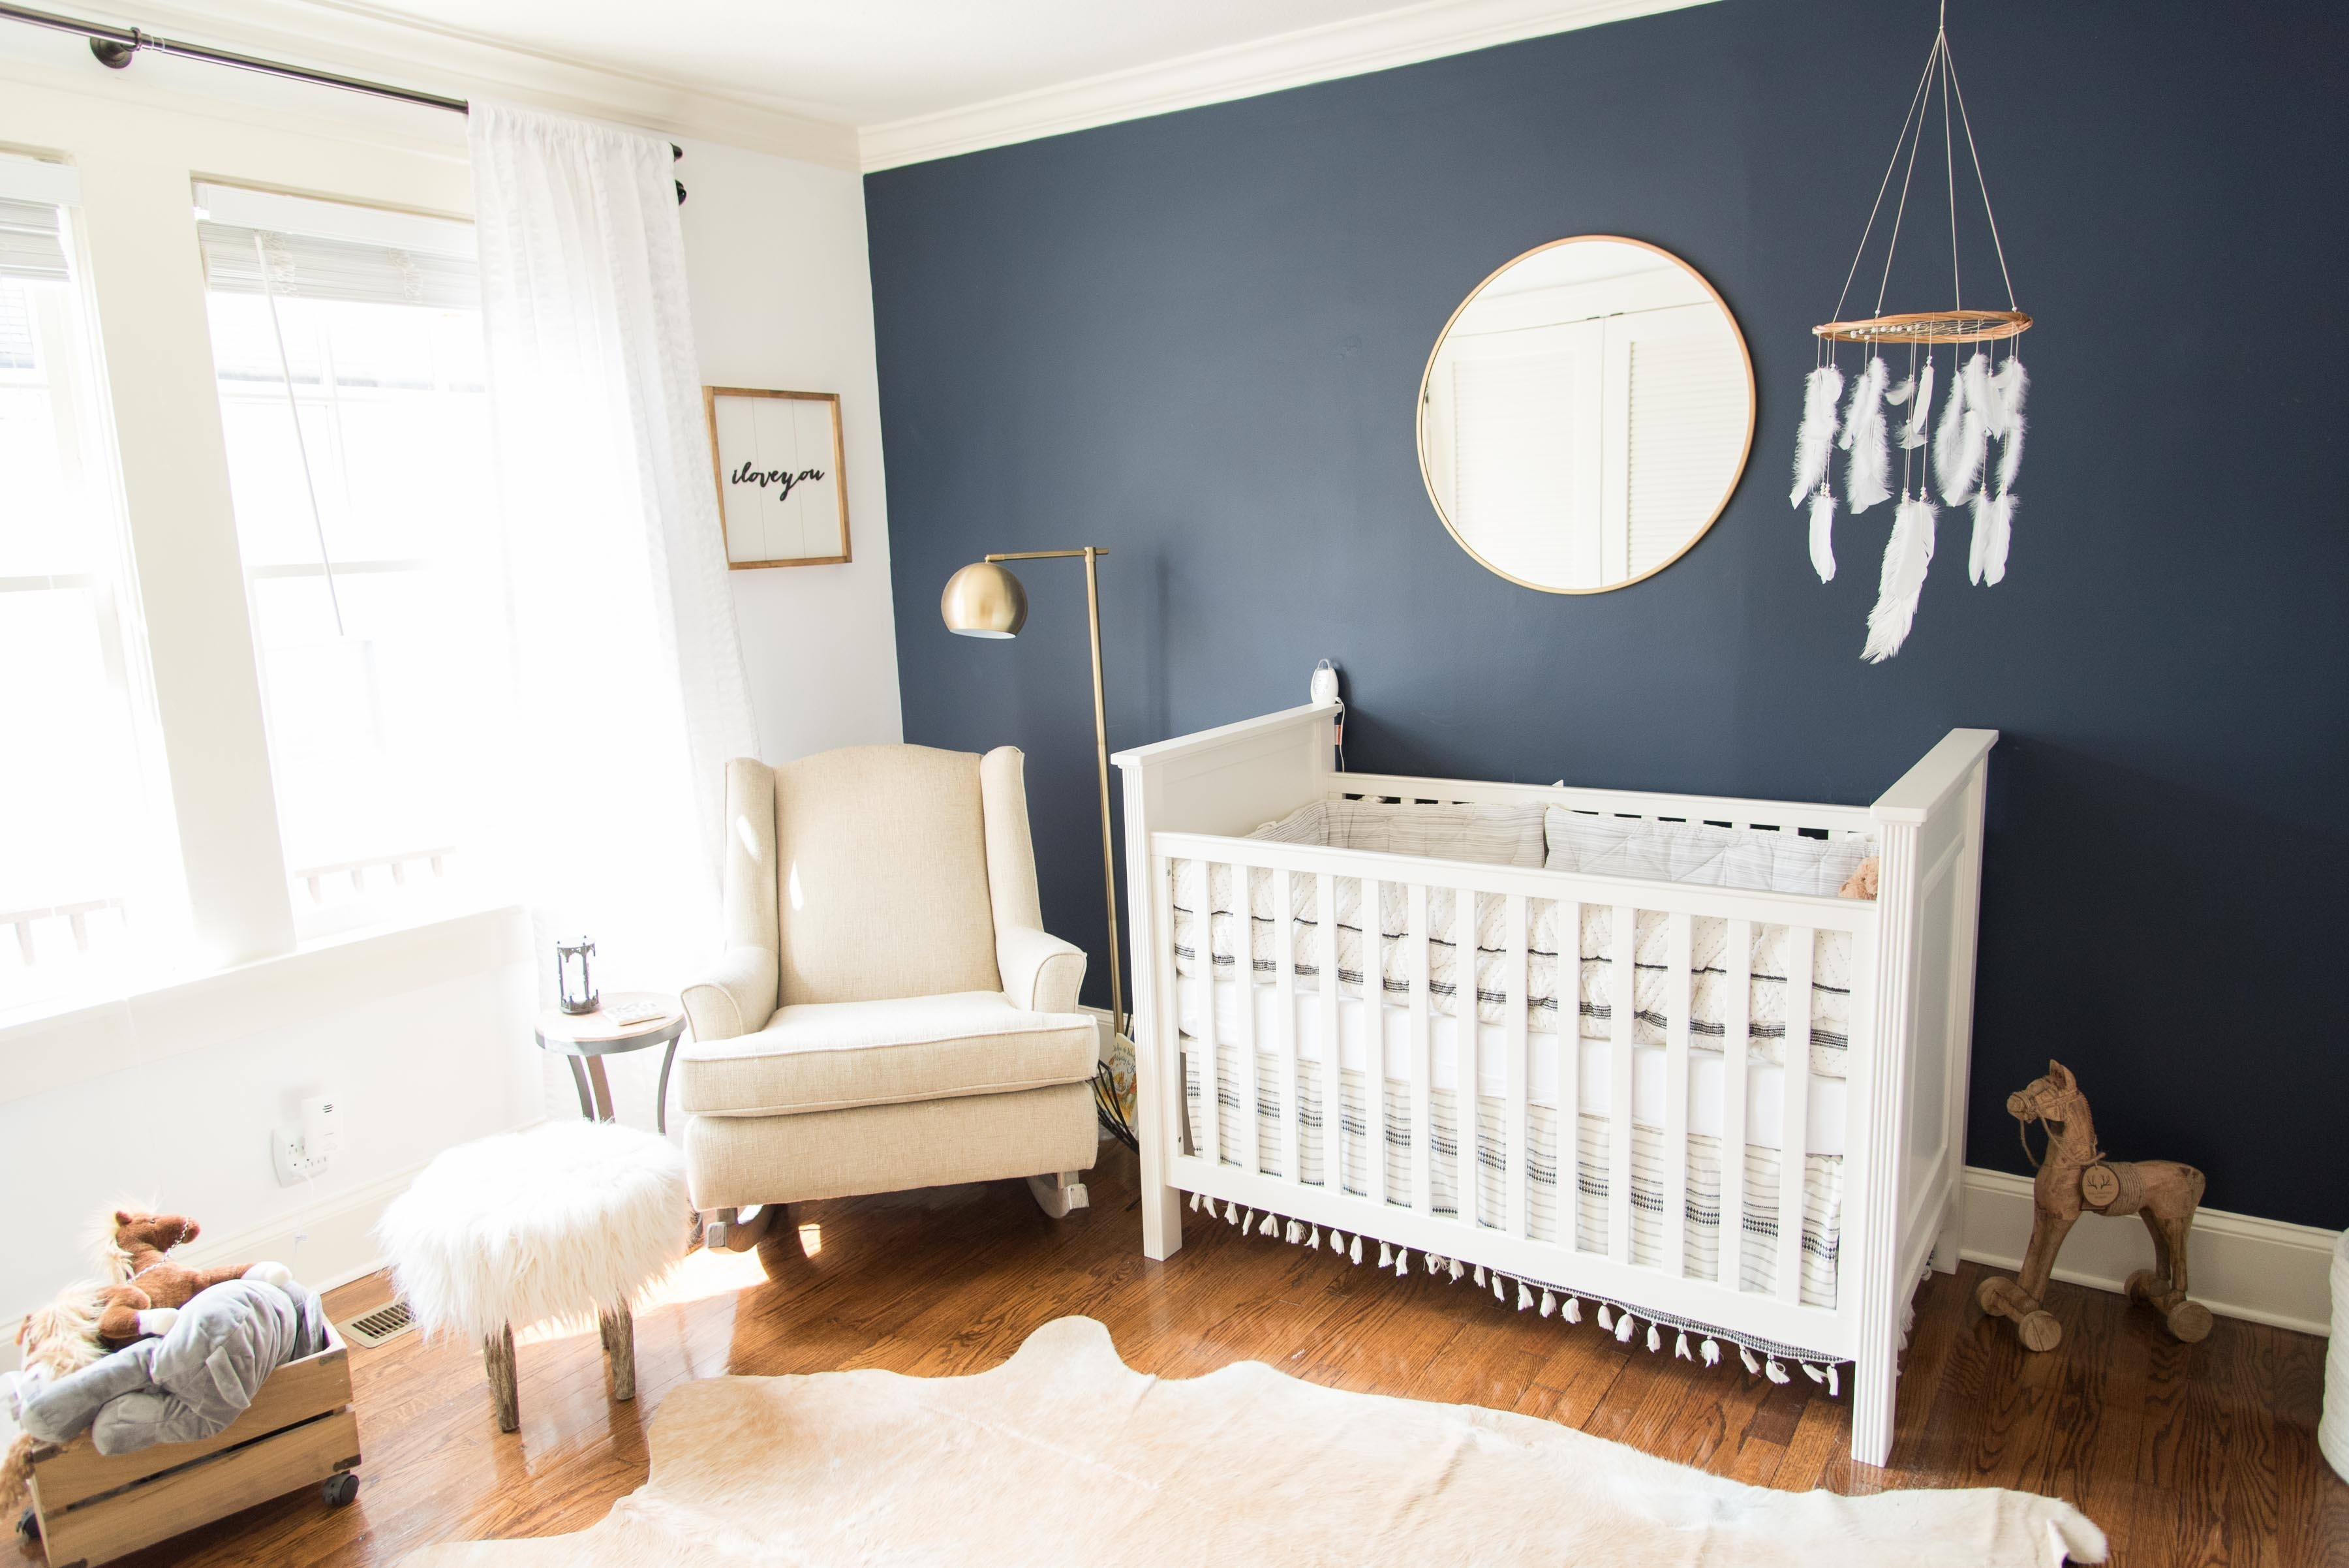 Dark wall colour trend in baby rooms